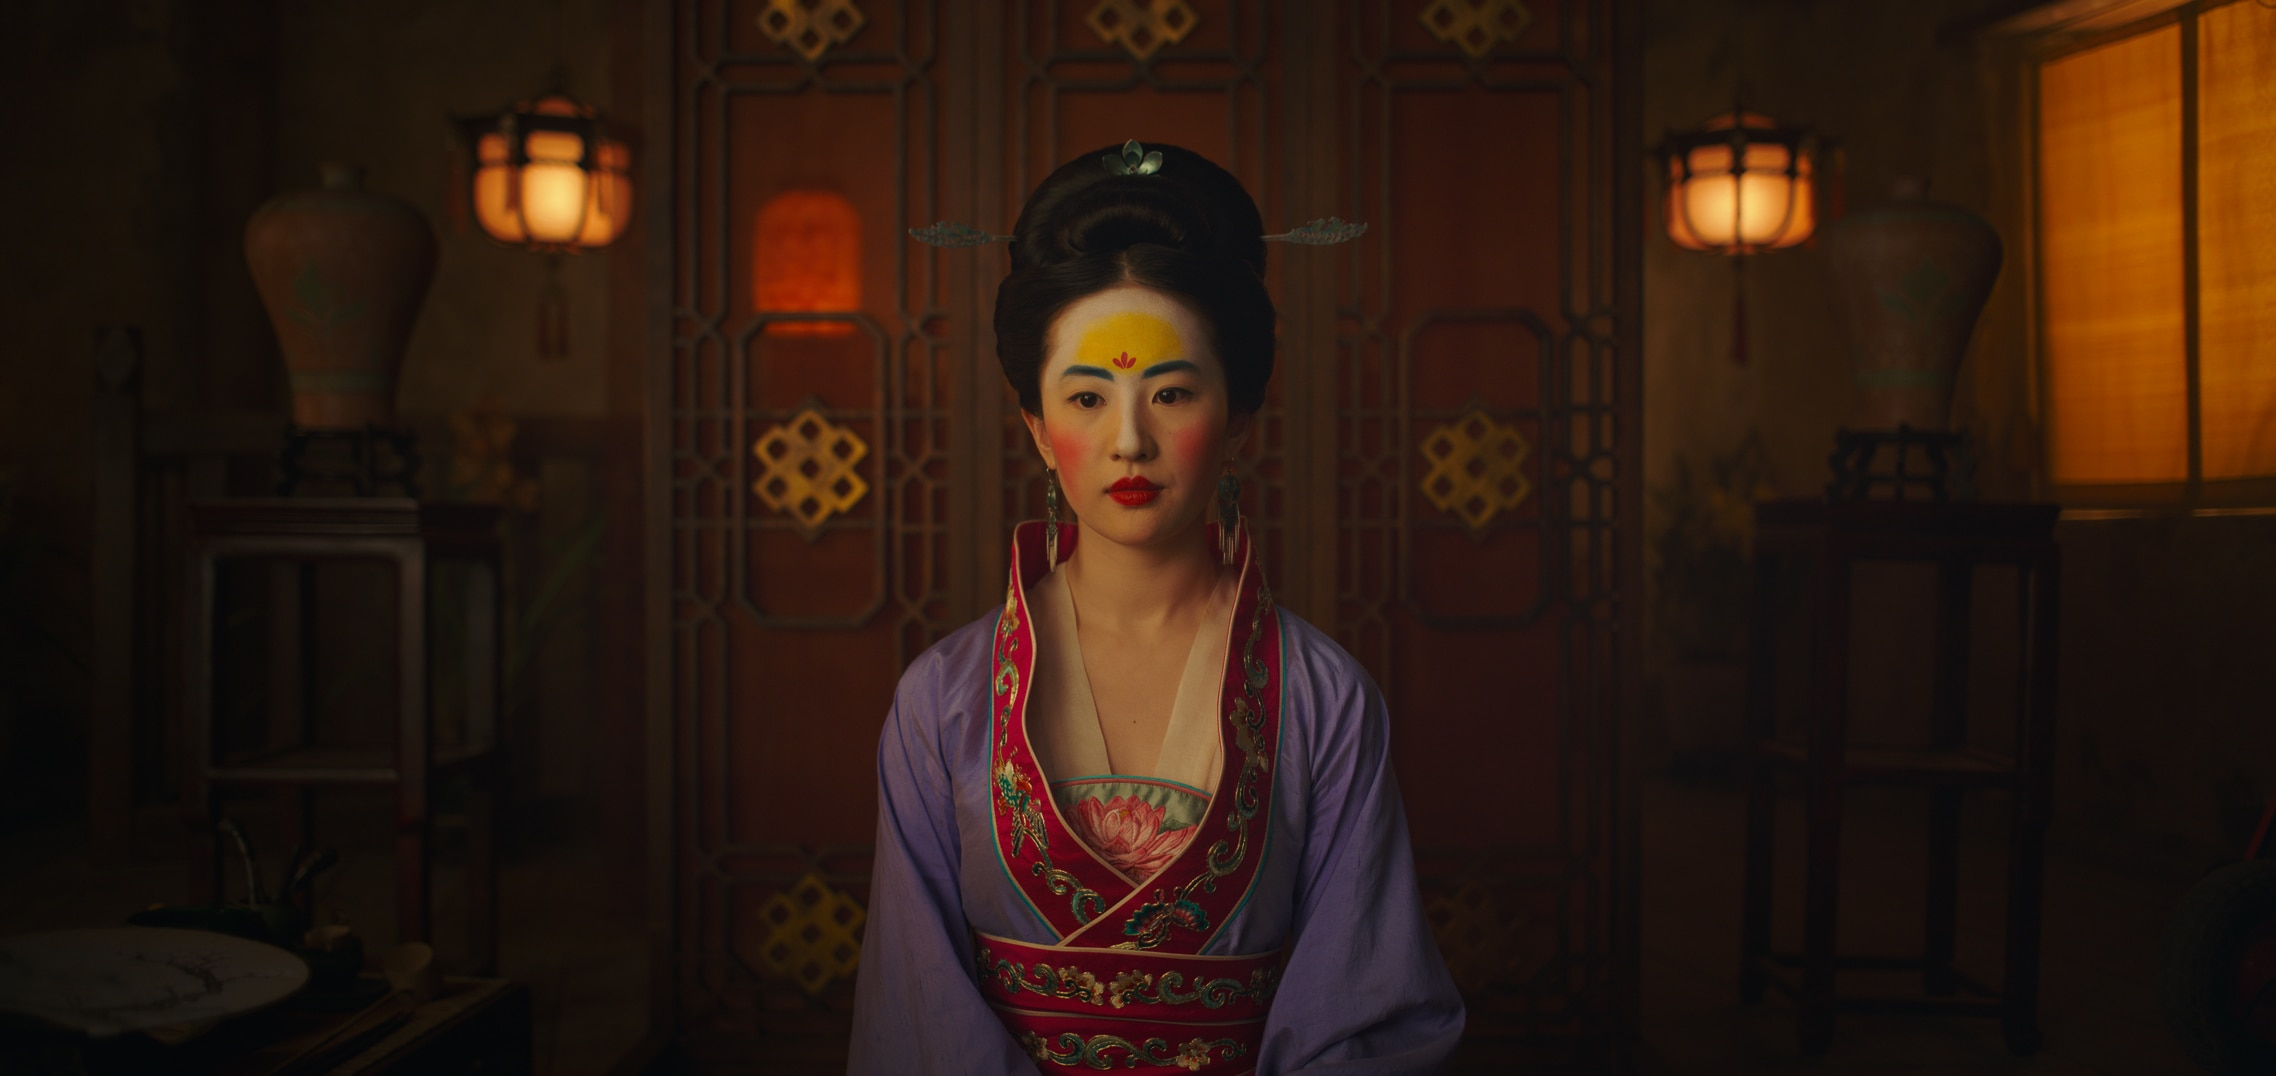 Mulan in make-up and a dress